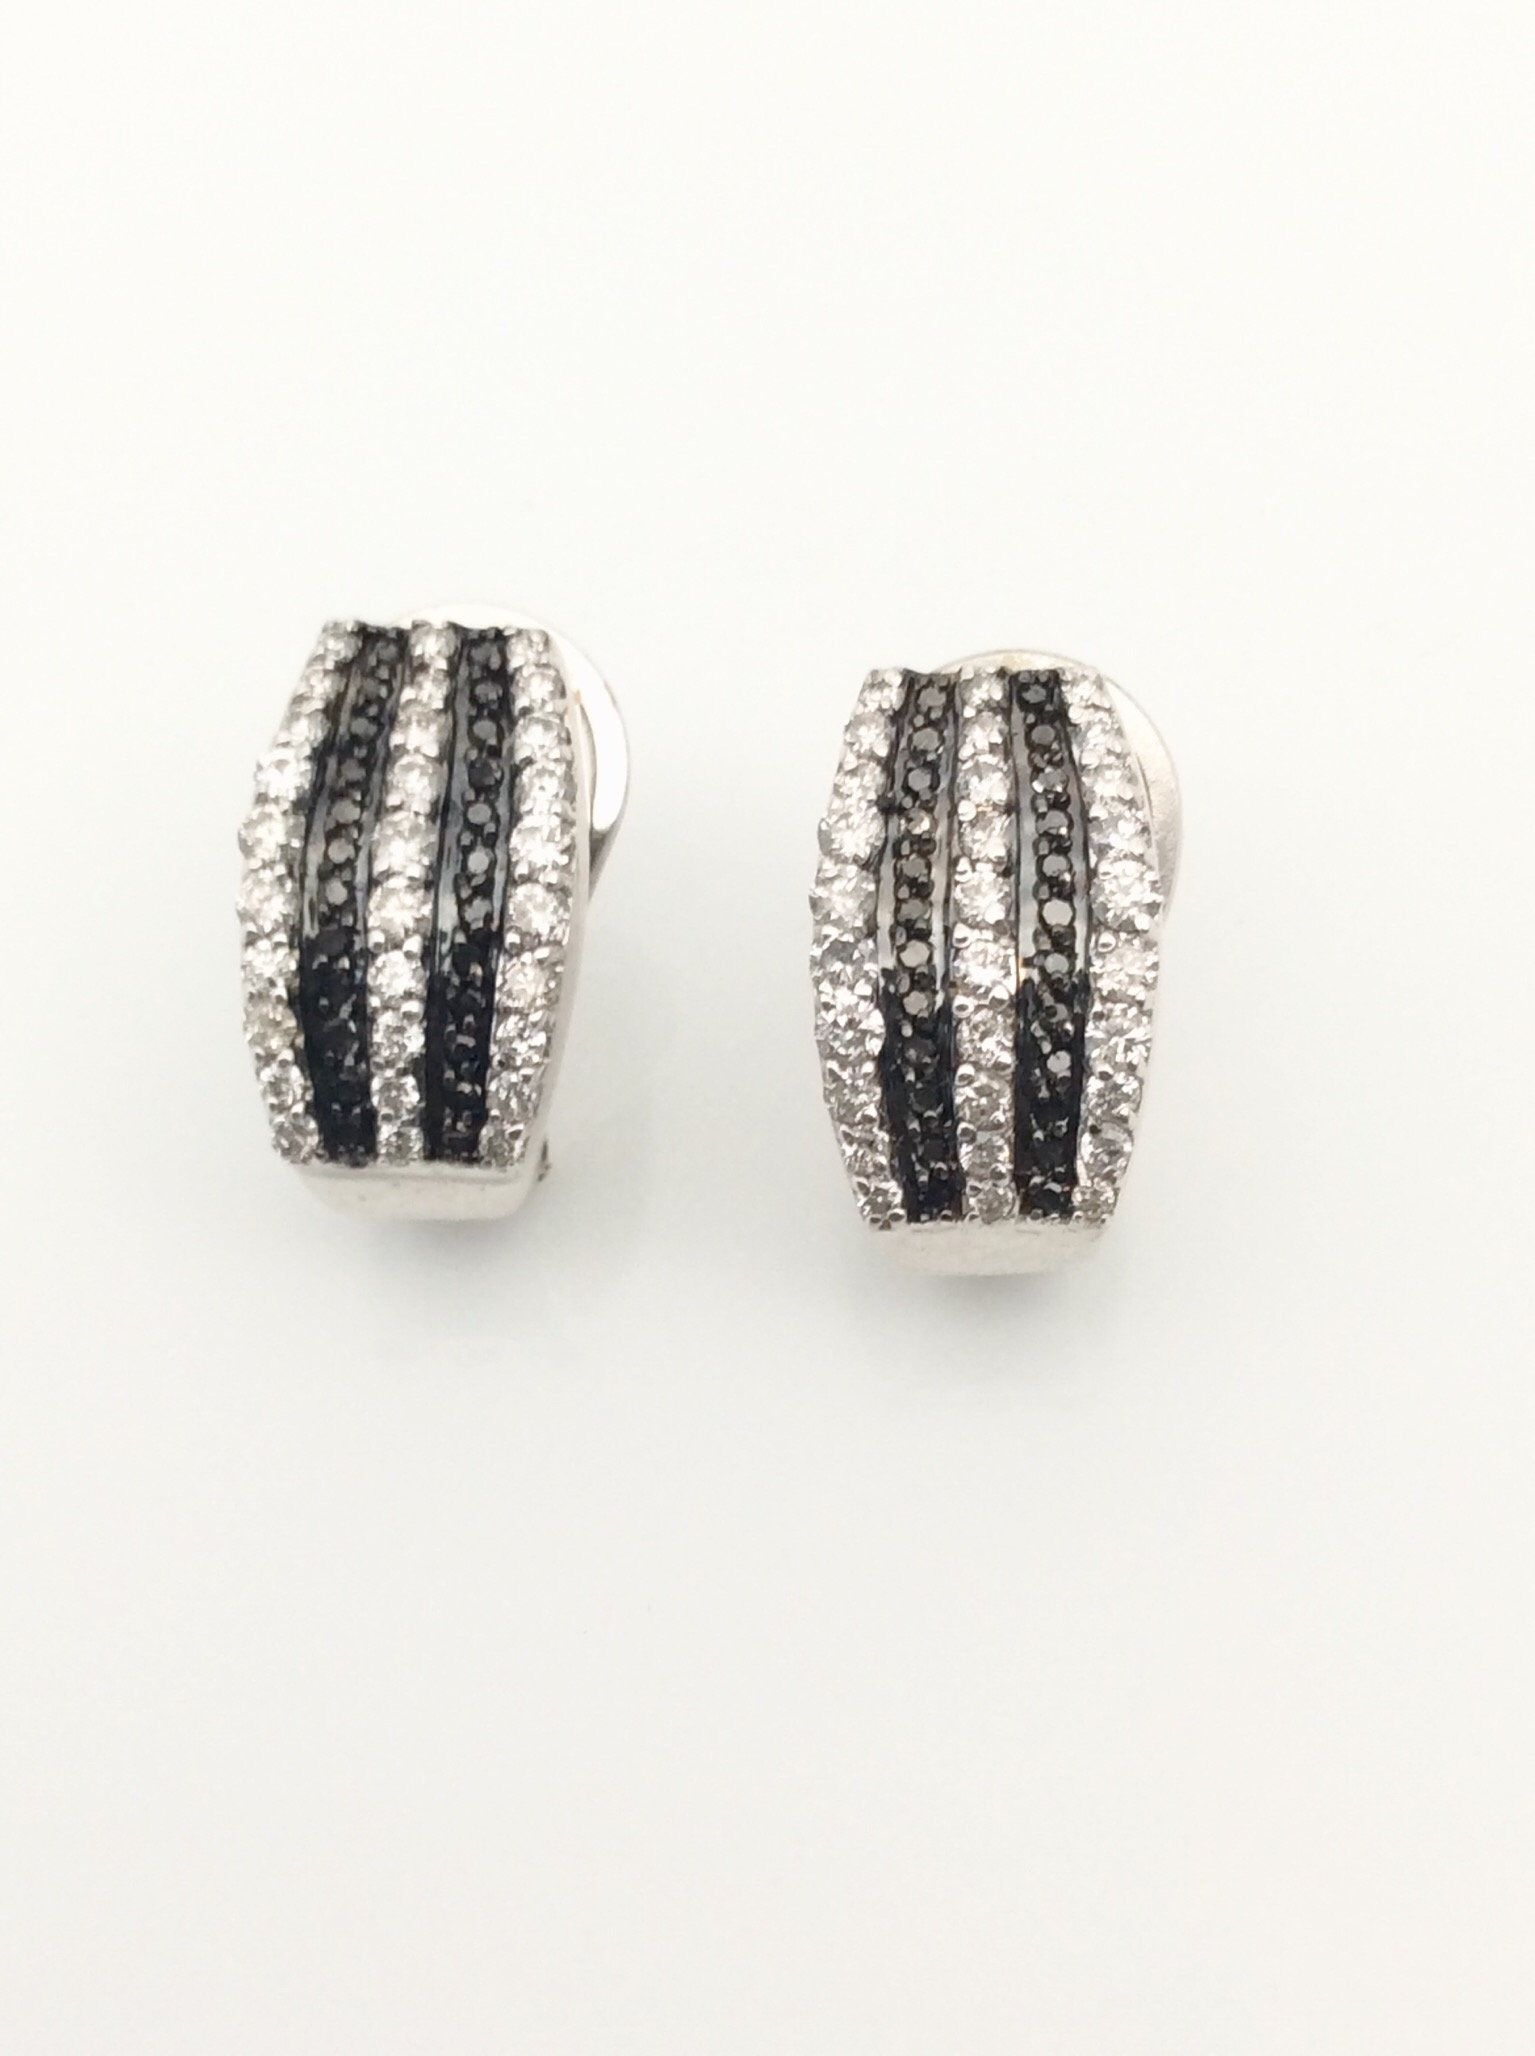 Black And White Diamond Earrings White Gold earrings Diamond